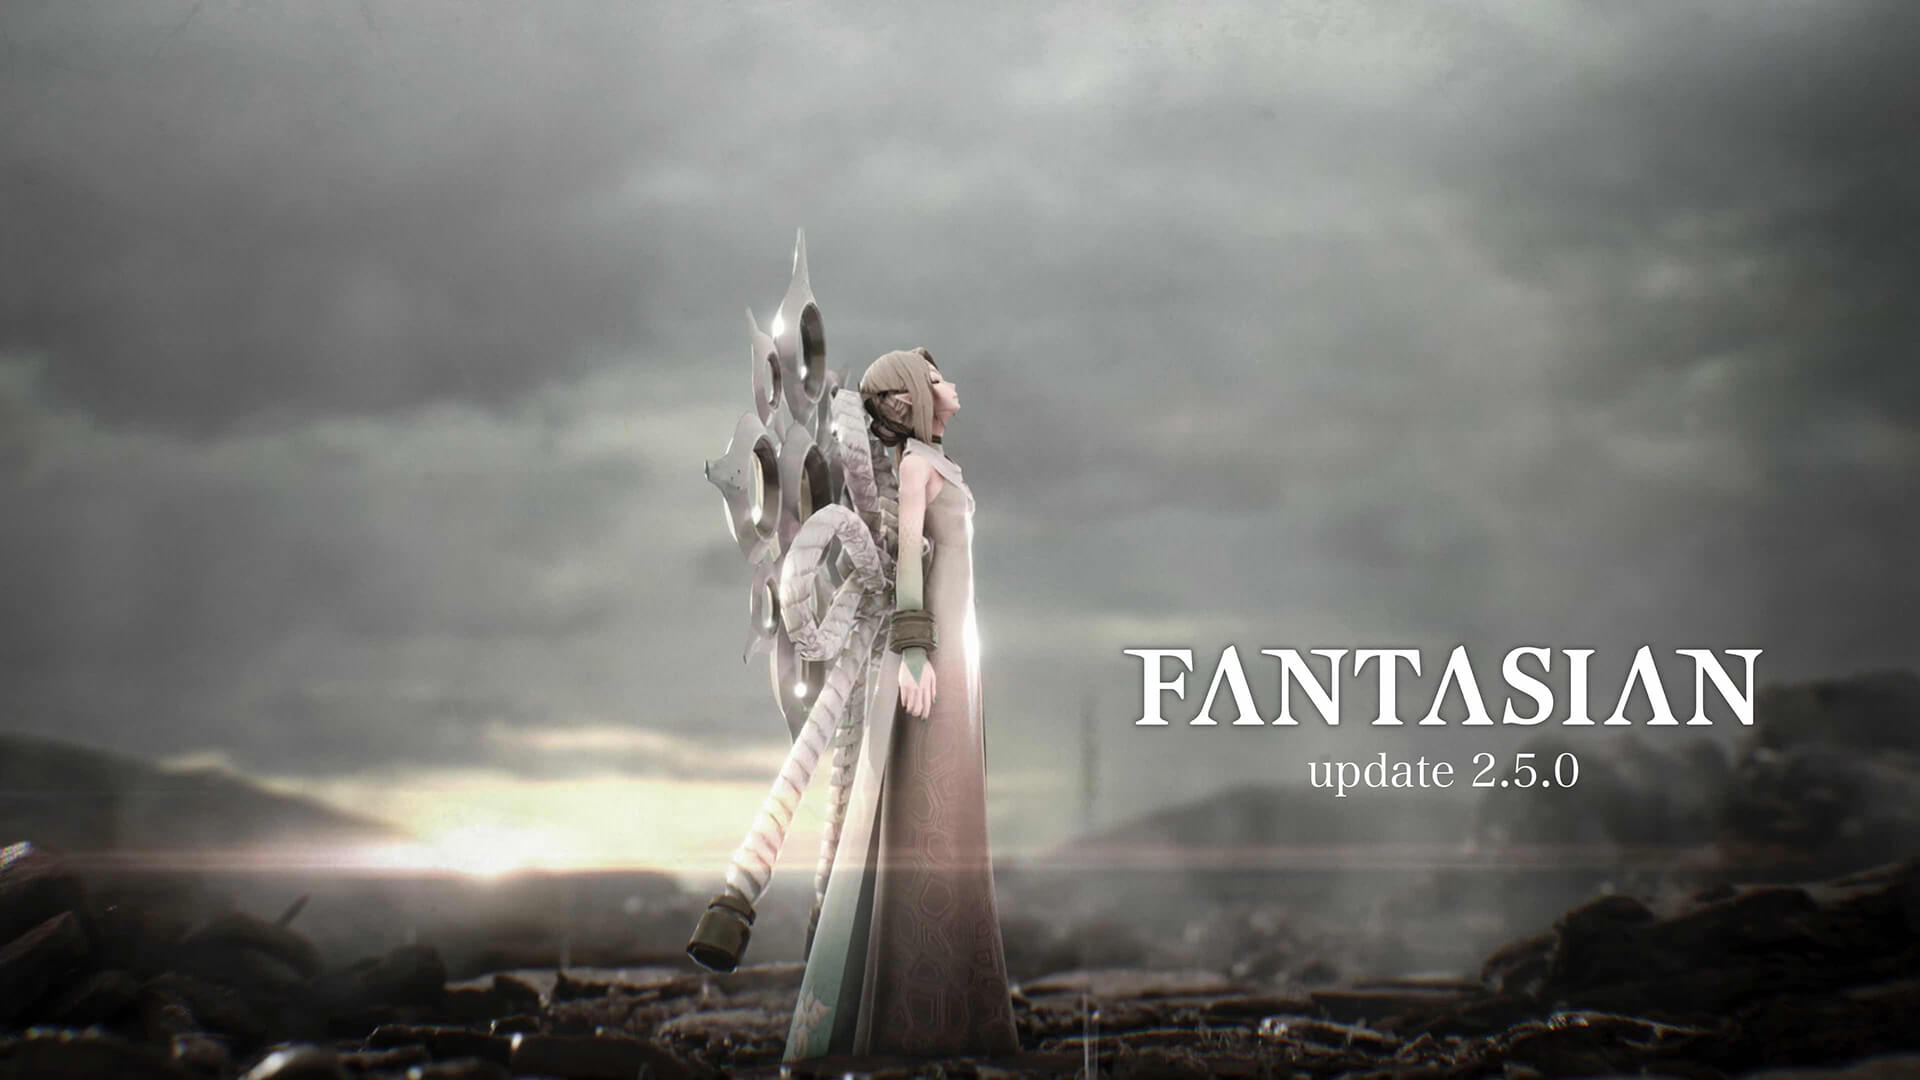 An image of Yim against a cloudy dark backdrop announcing Fantasian's 2.5.0 update